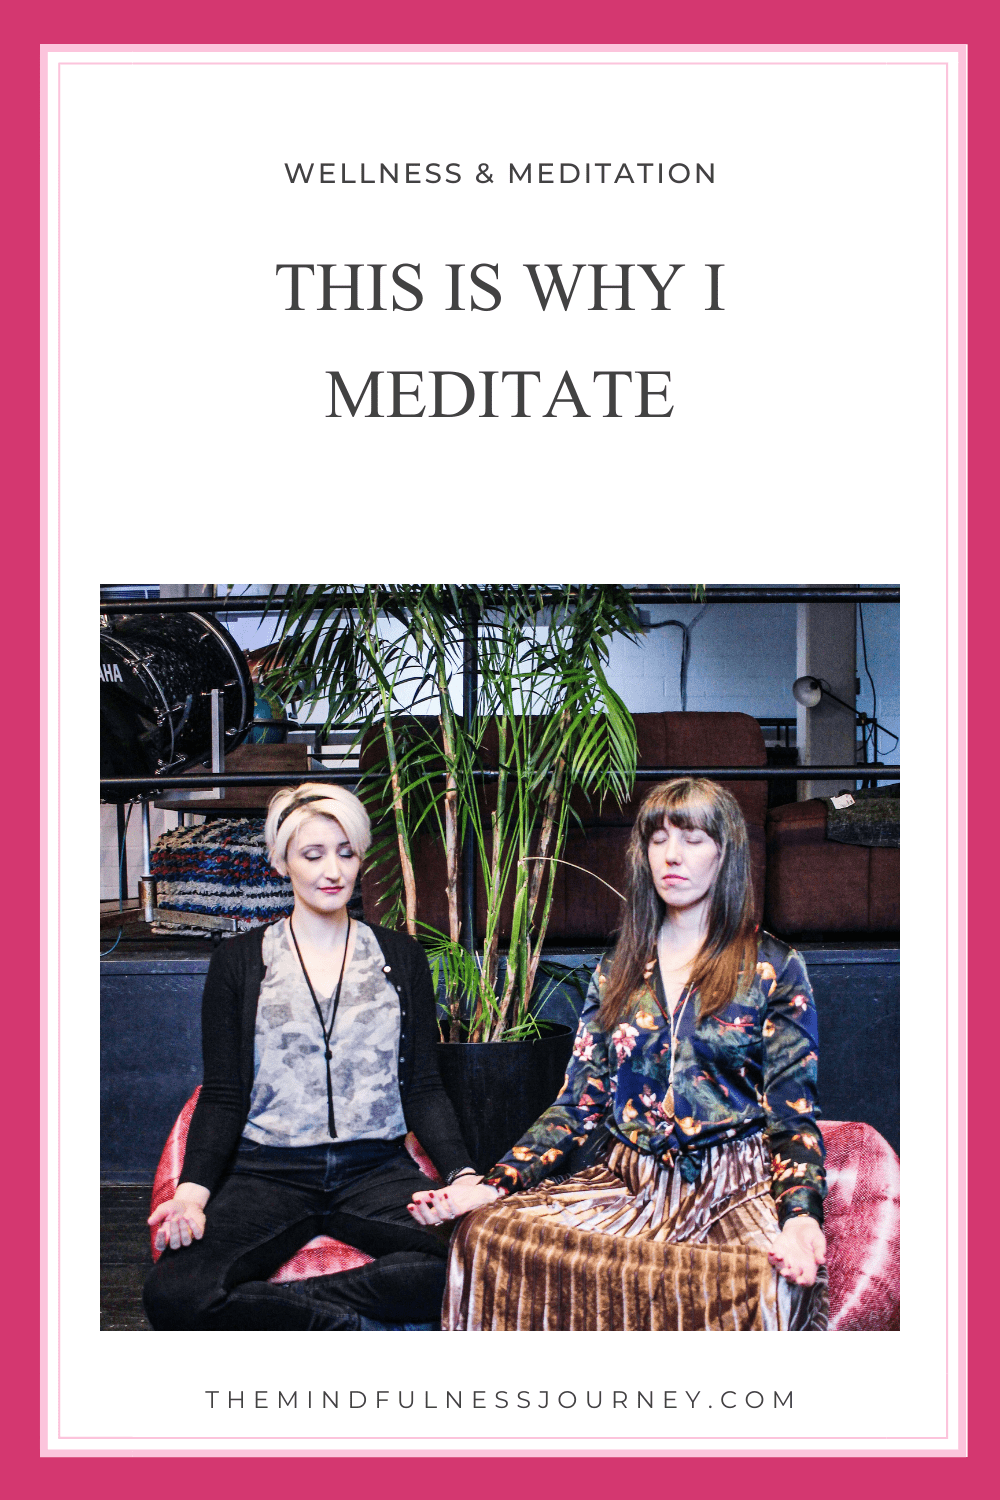 This is why I meditate | The Mindfulness Journey | 2 women Meditating | Meditation